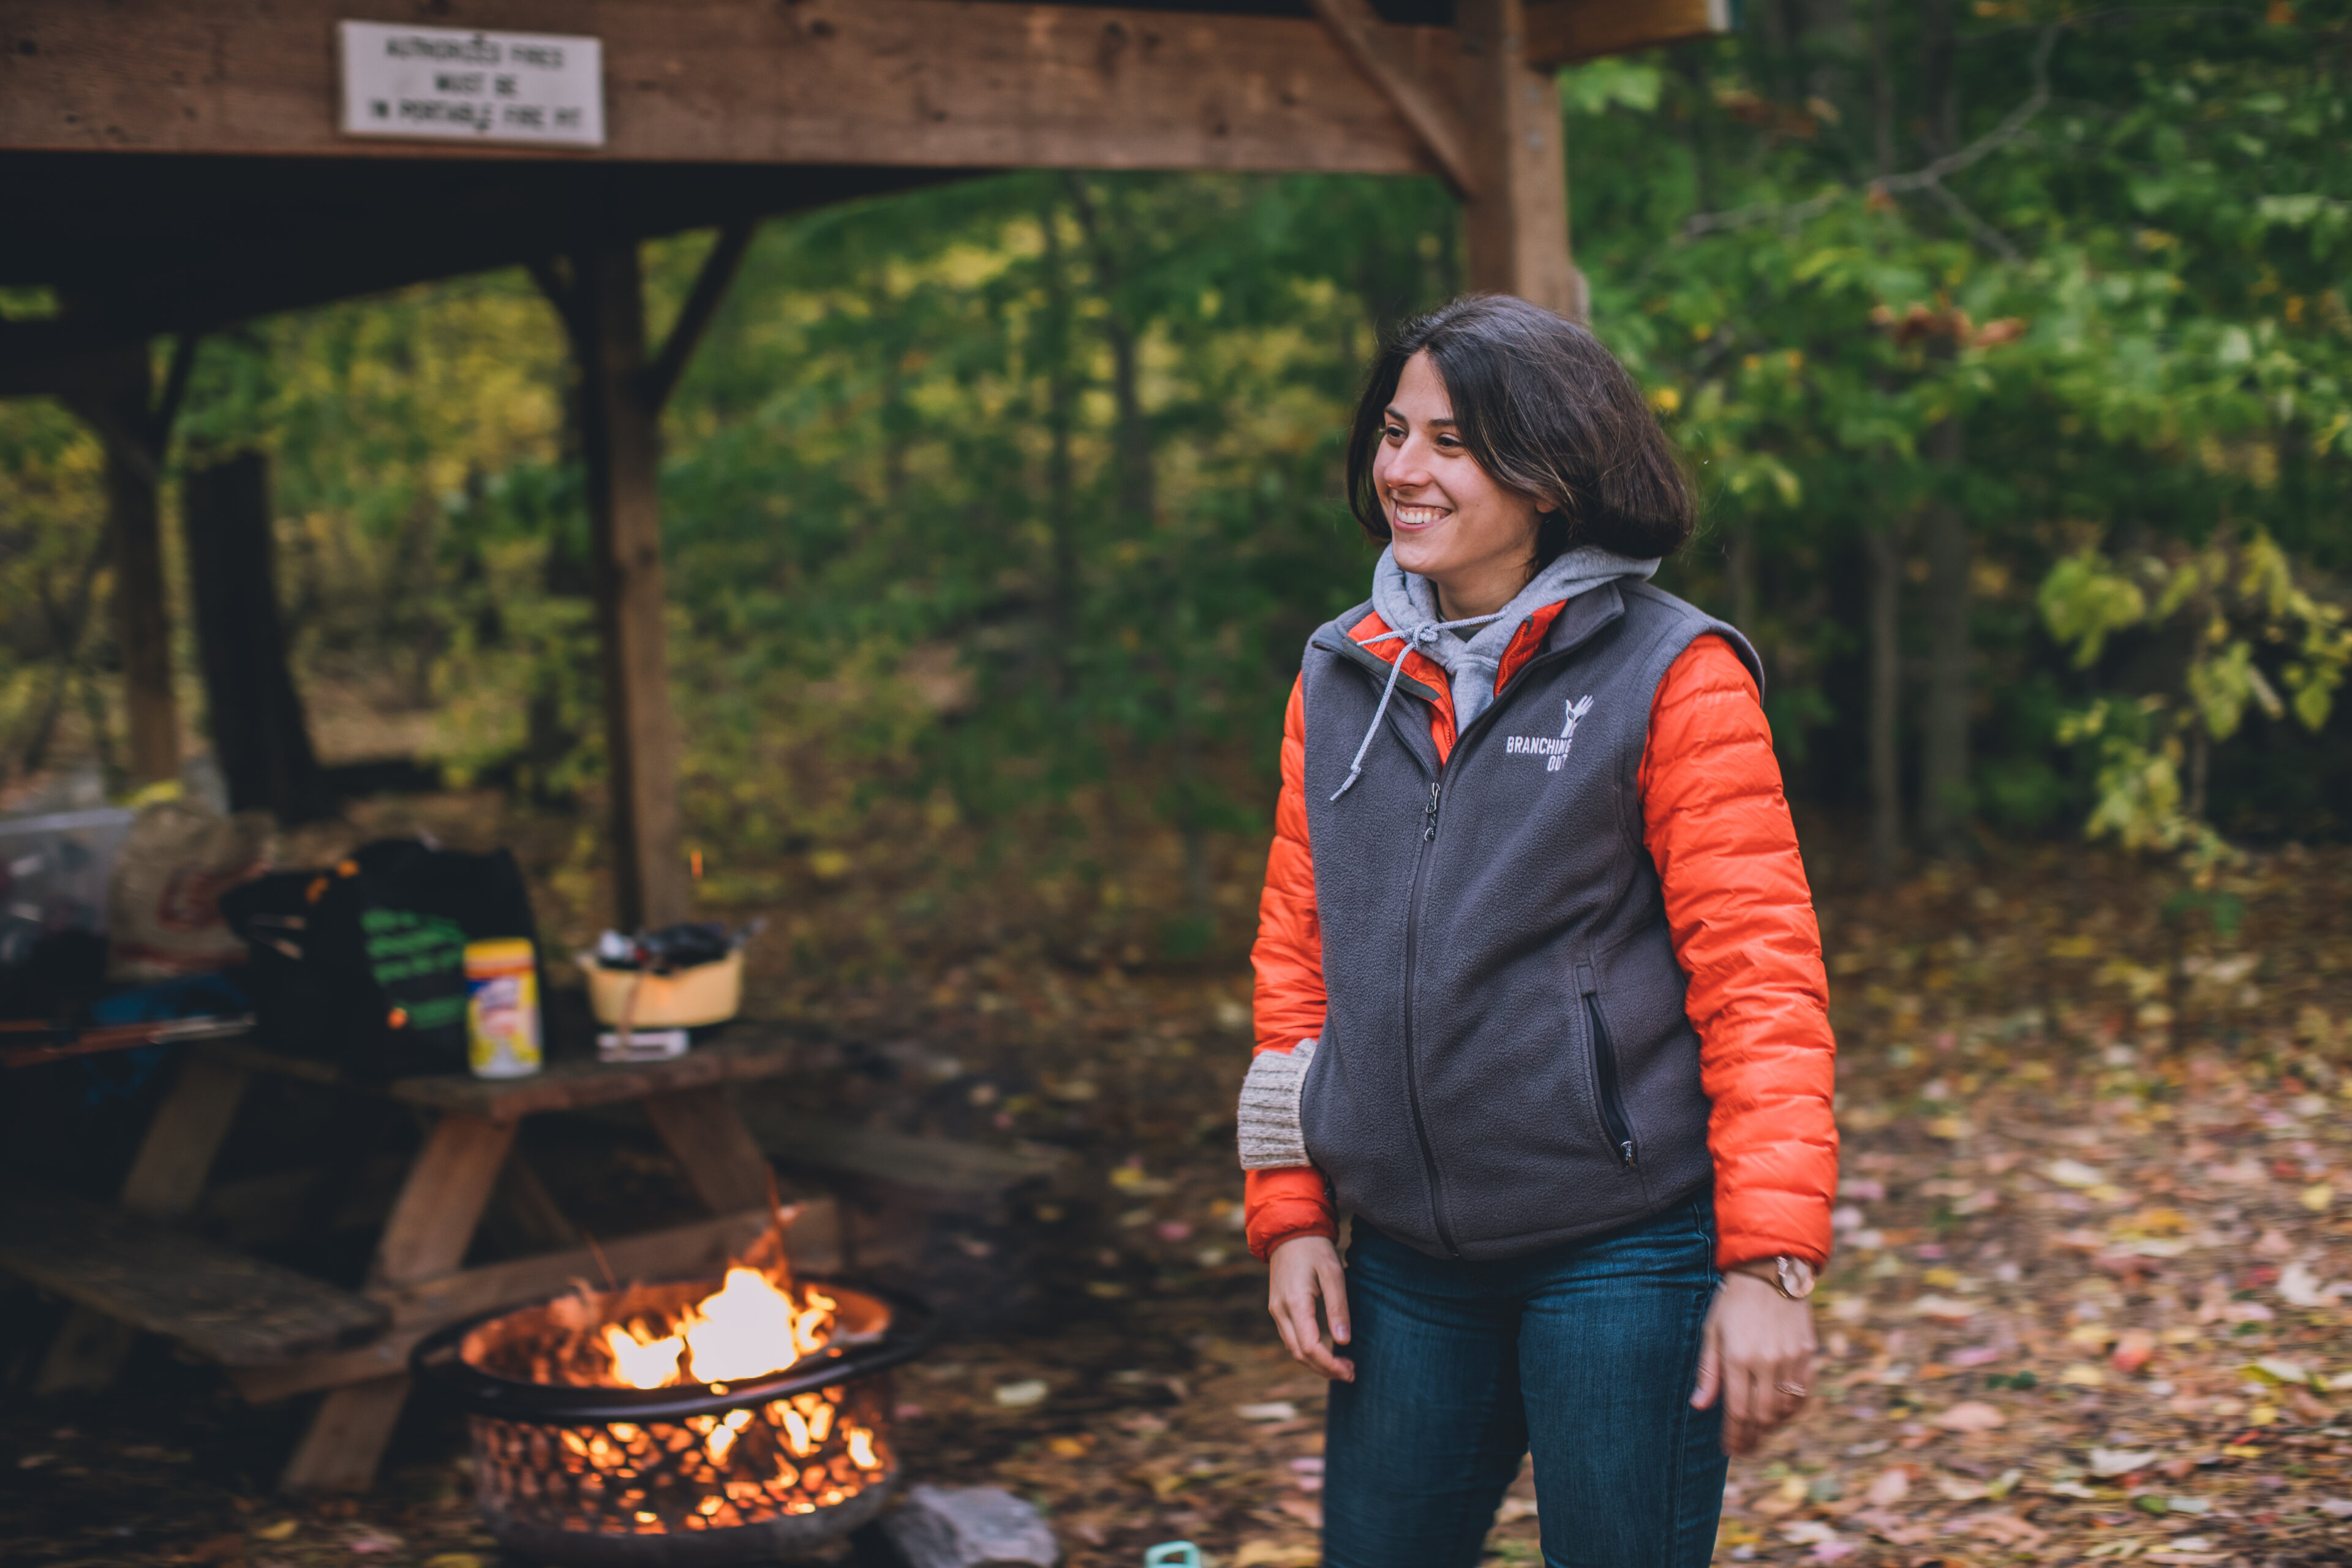 affordable outdoor gear